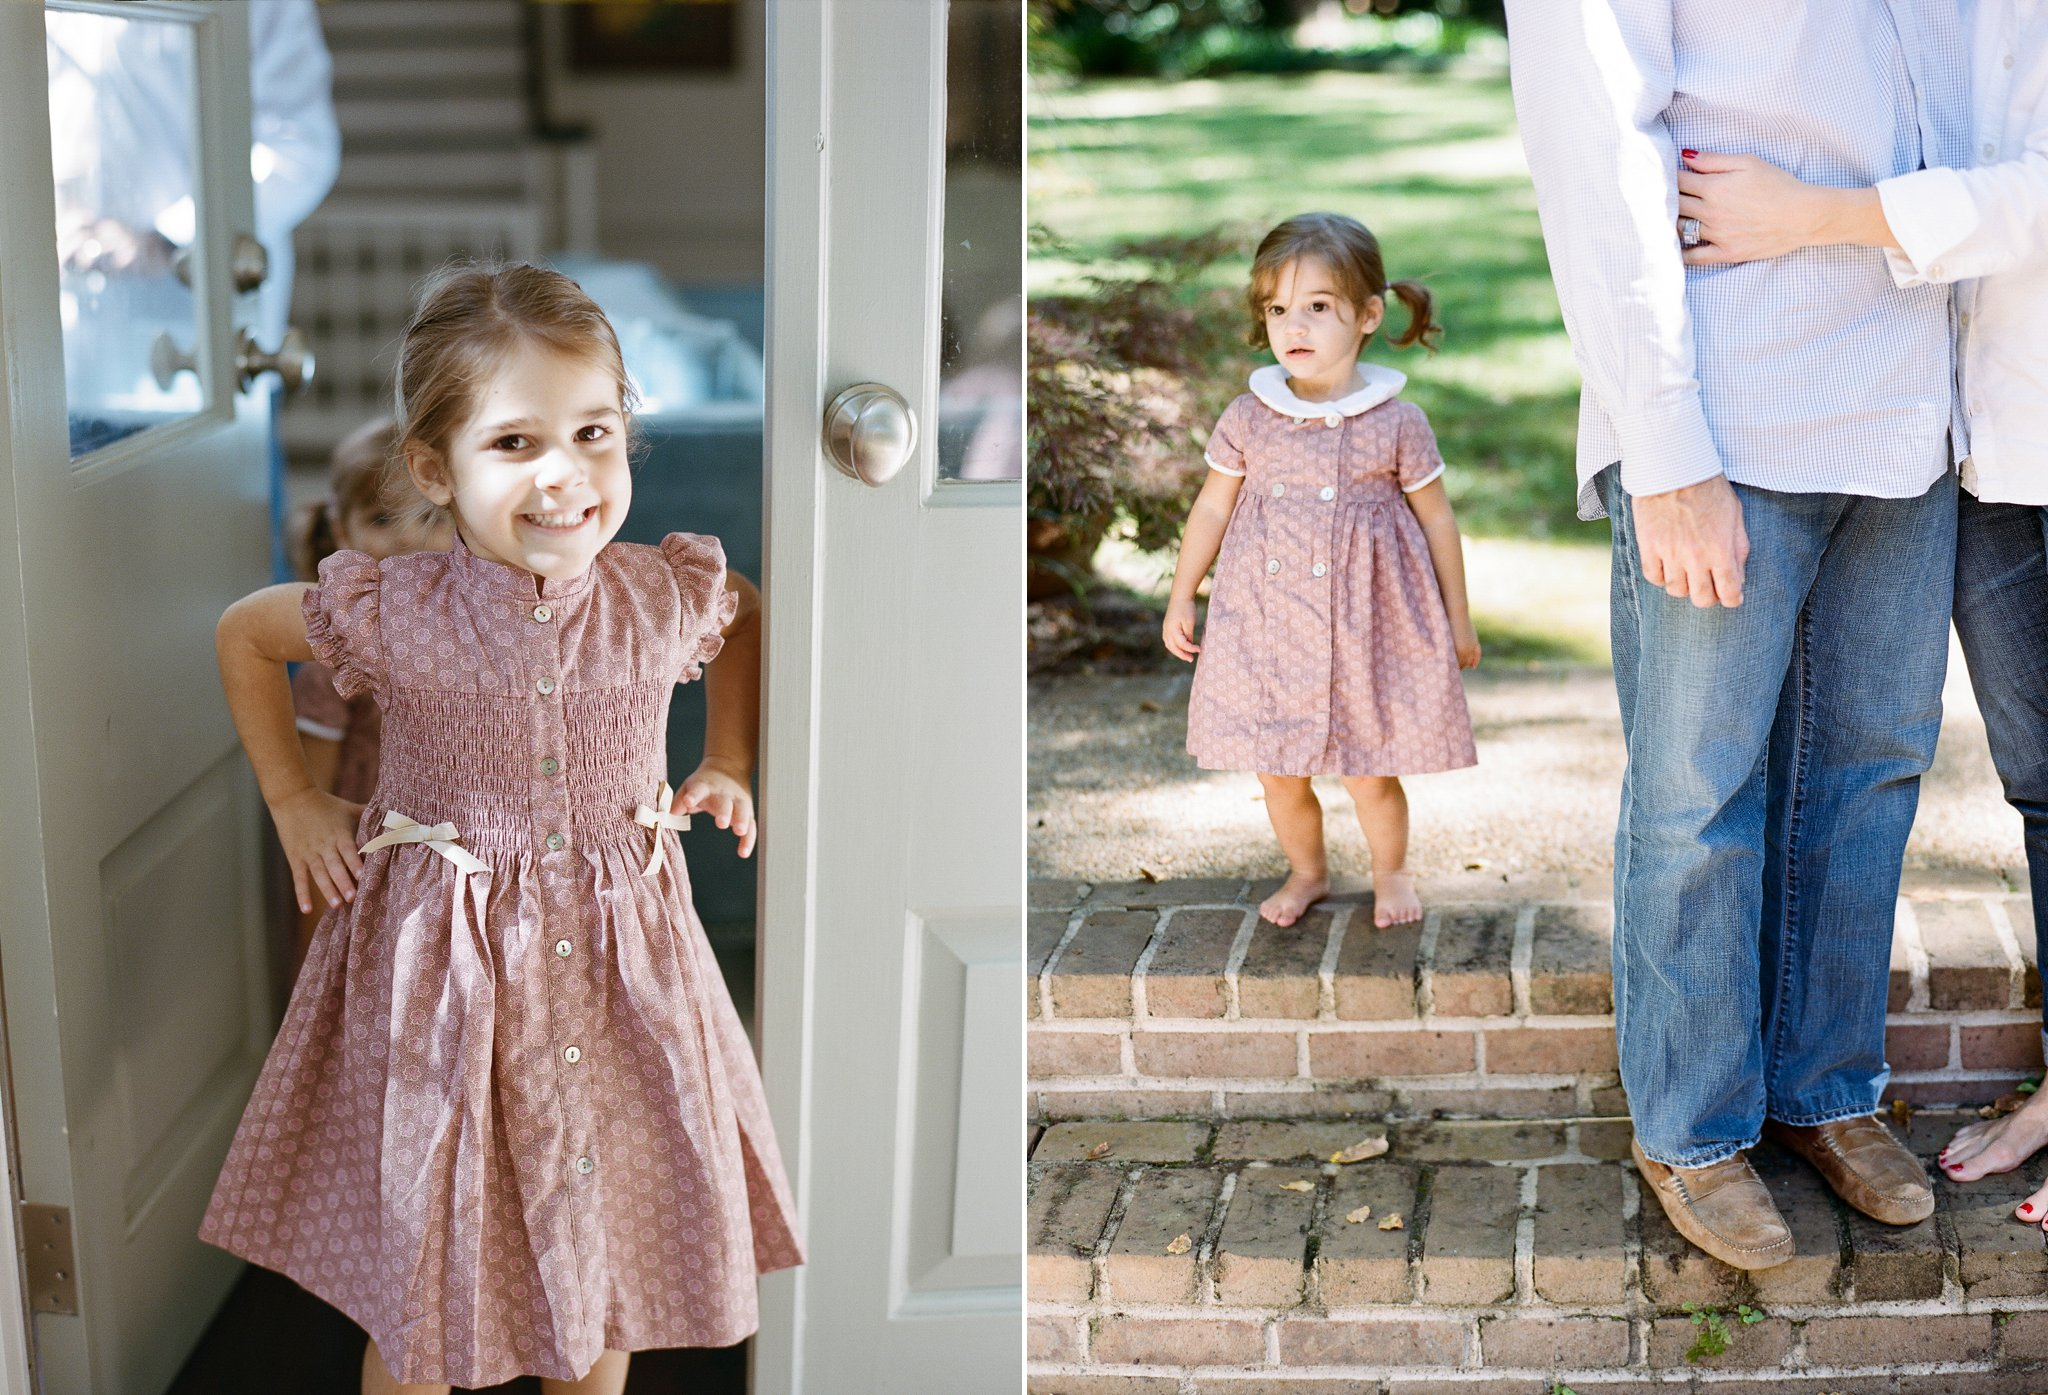 tallahassee family photographer shannon griffin photography_0045.jpg